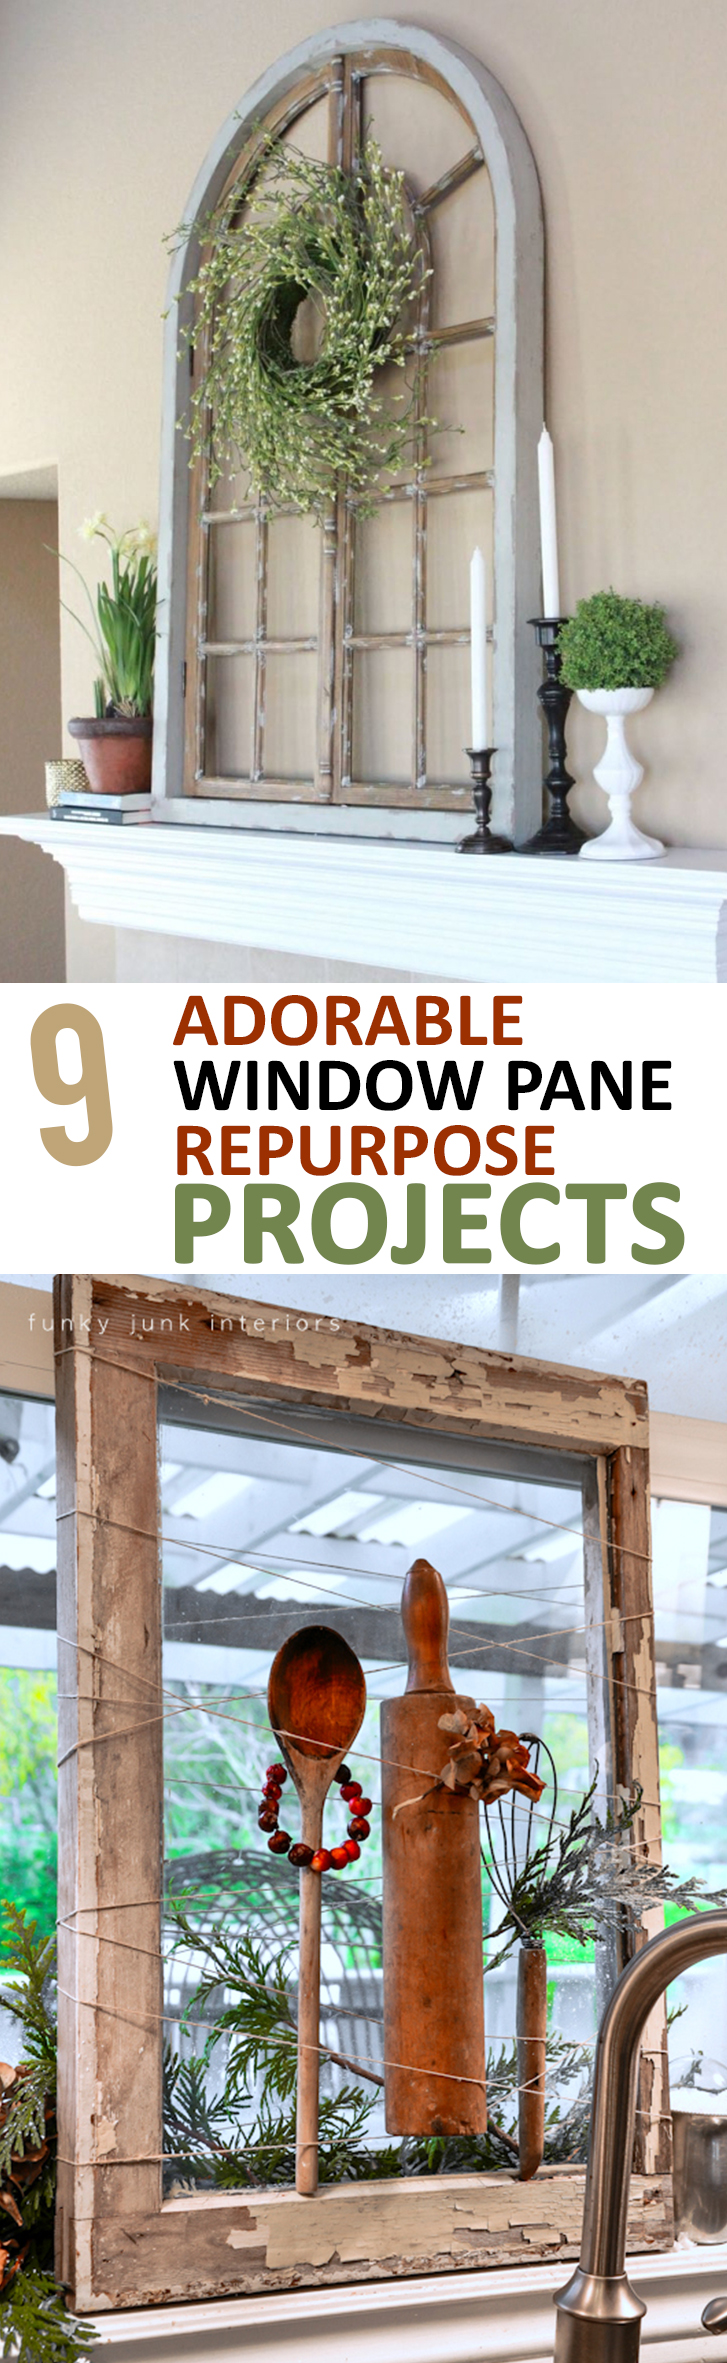 9 Adorable Window Pane Repurpose Projects Sunlit Spaces Diy Home Decor Holiday And More